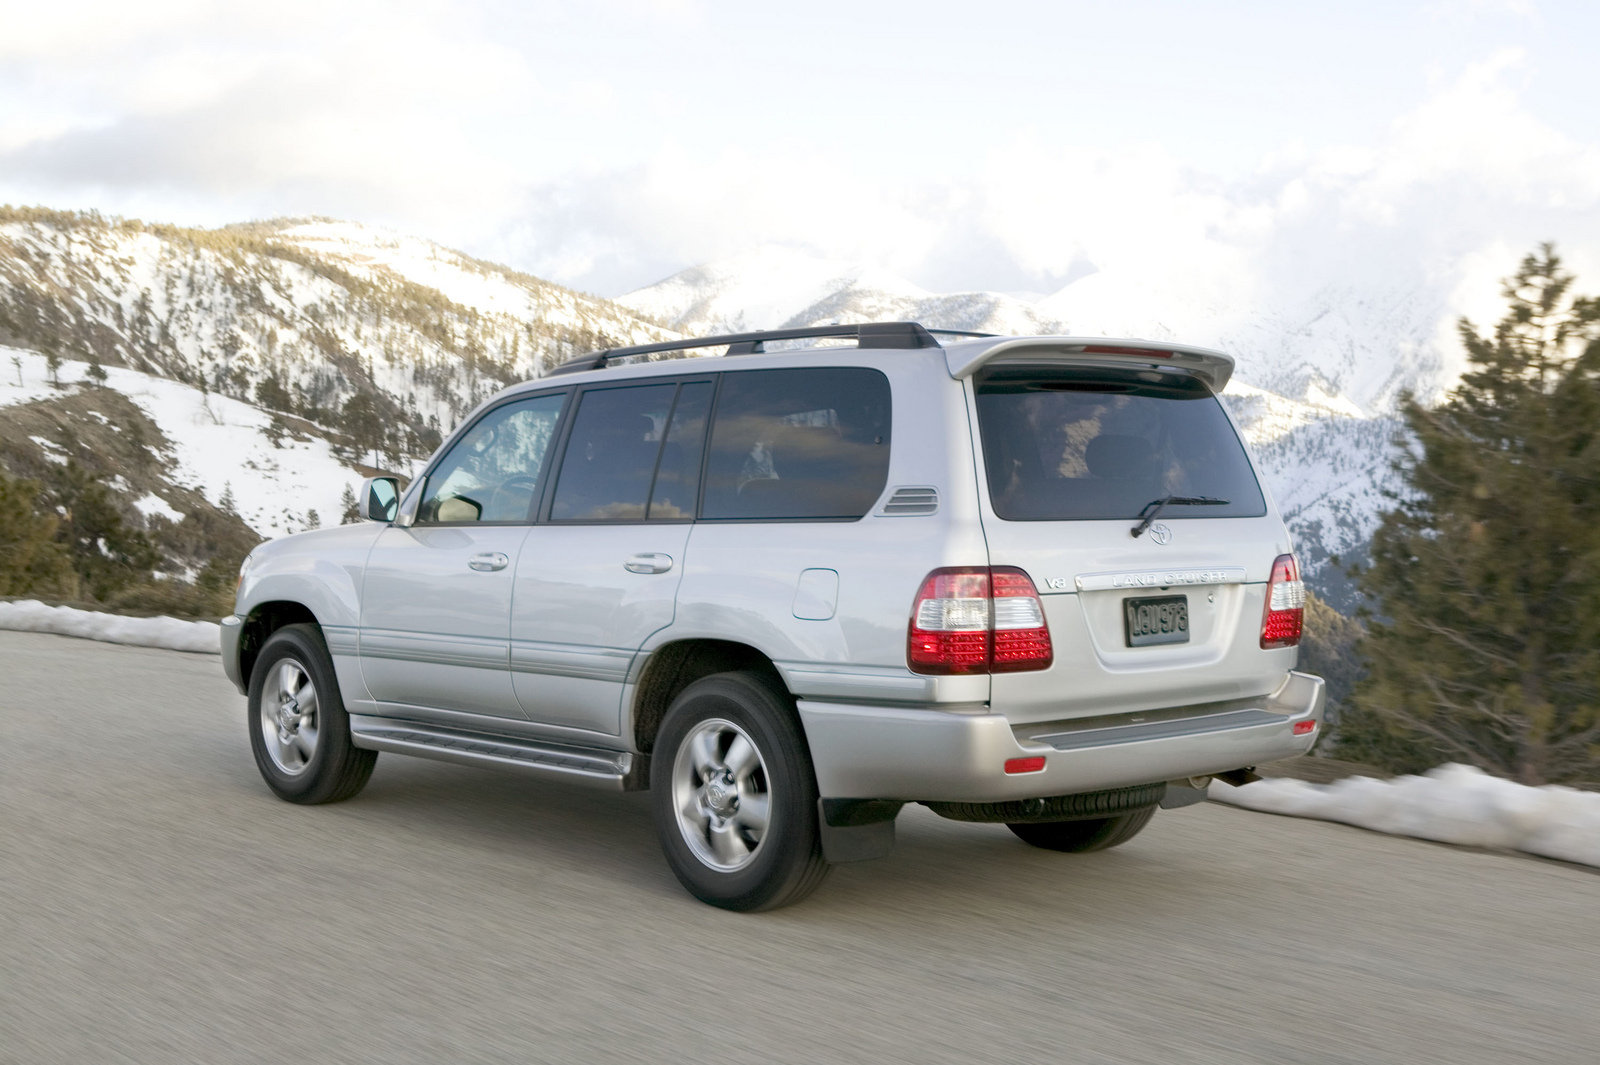 2006 toyota land cruiser picture 94394 car review. Black Bedroom Furniture Sets. Home Design Ideas